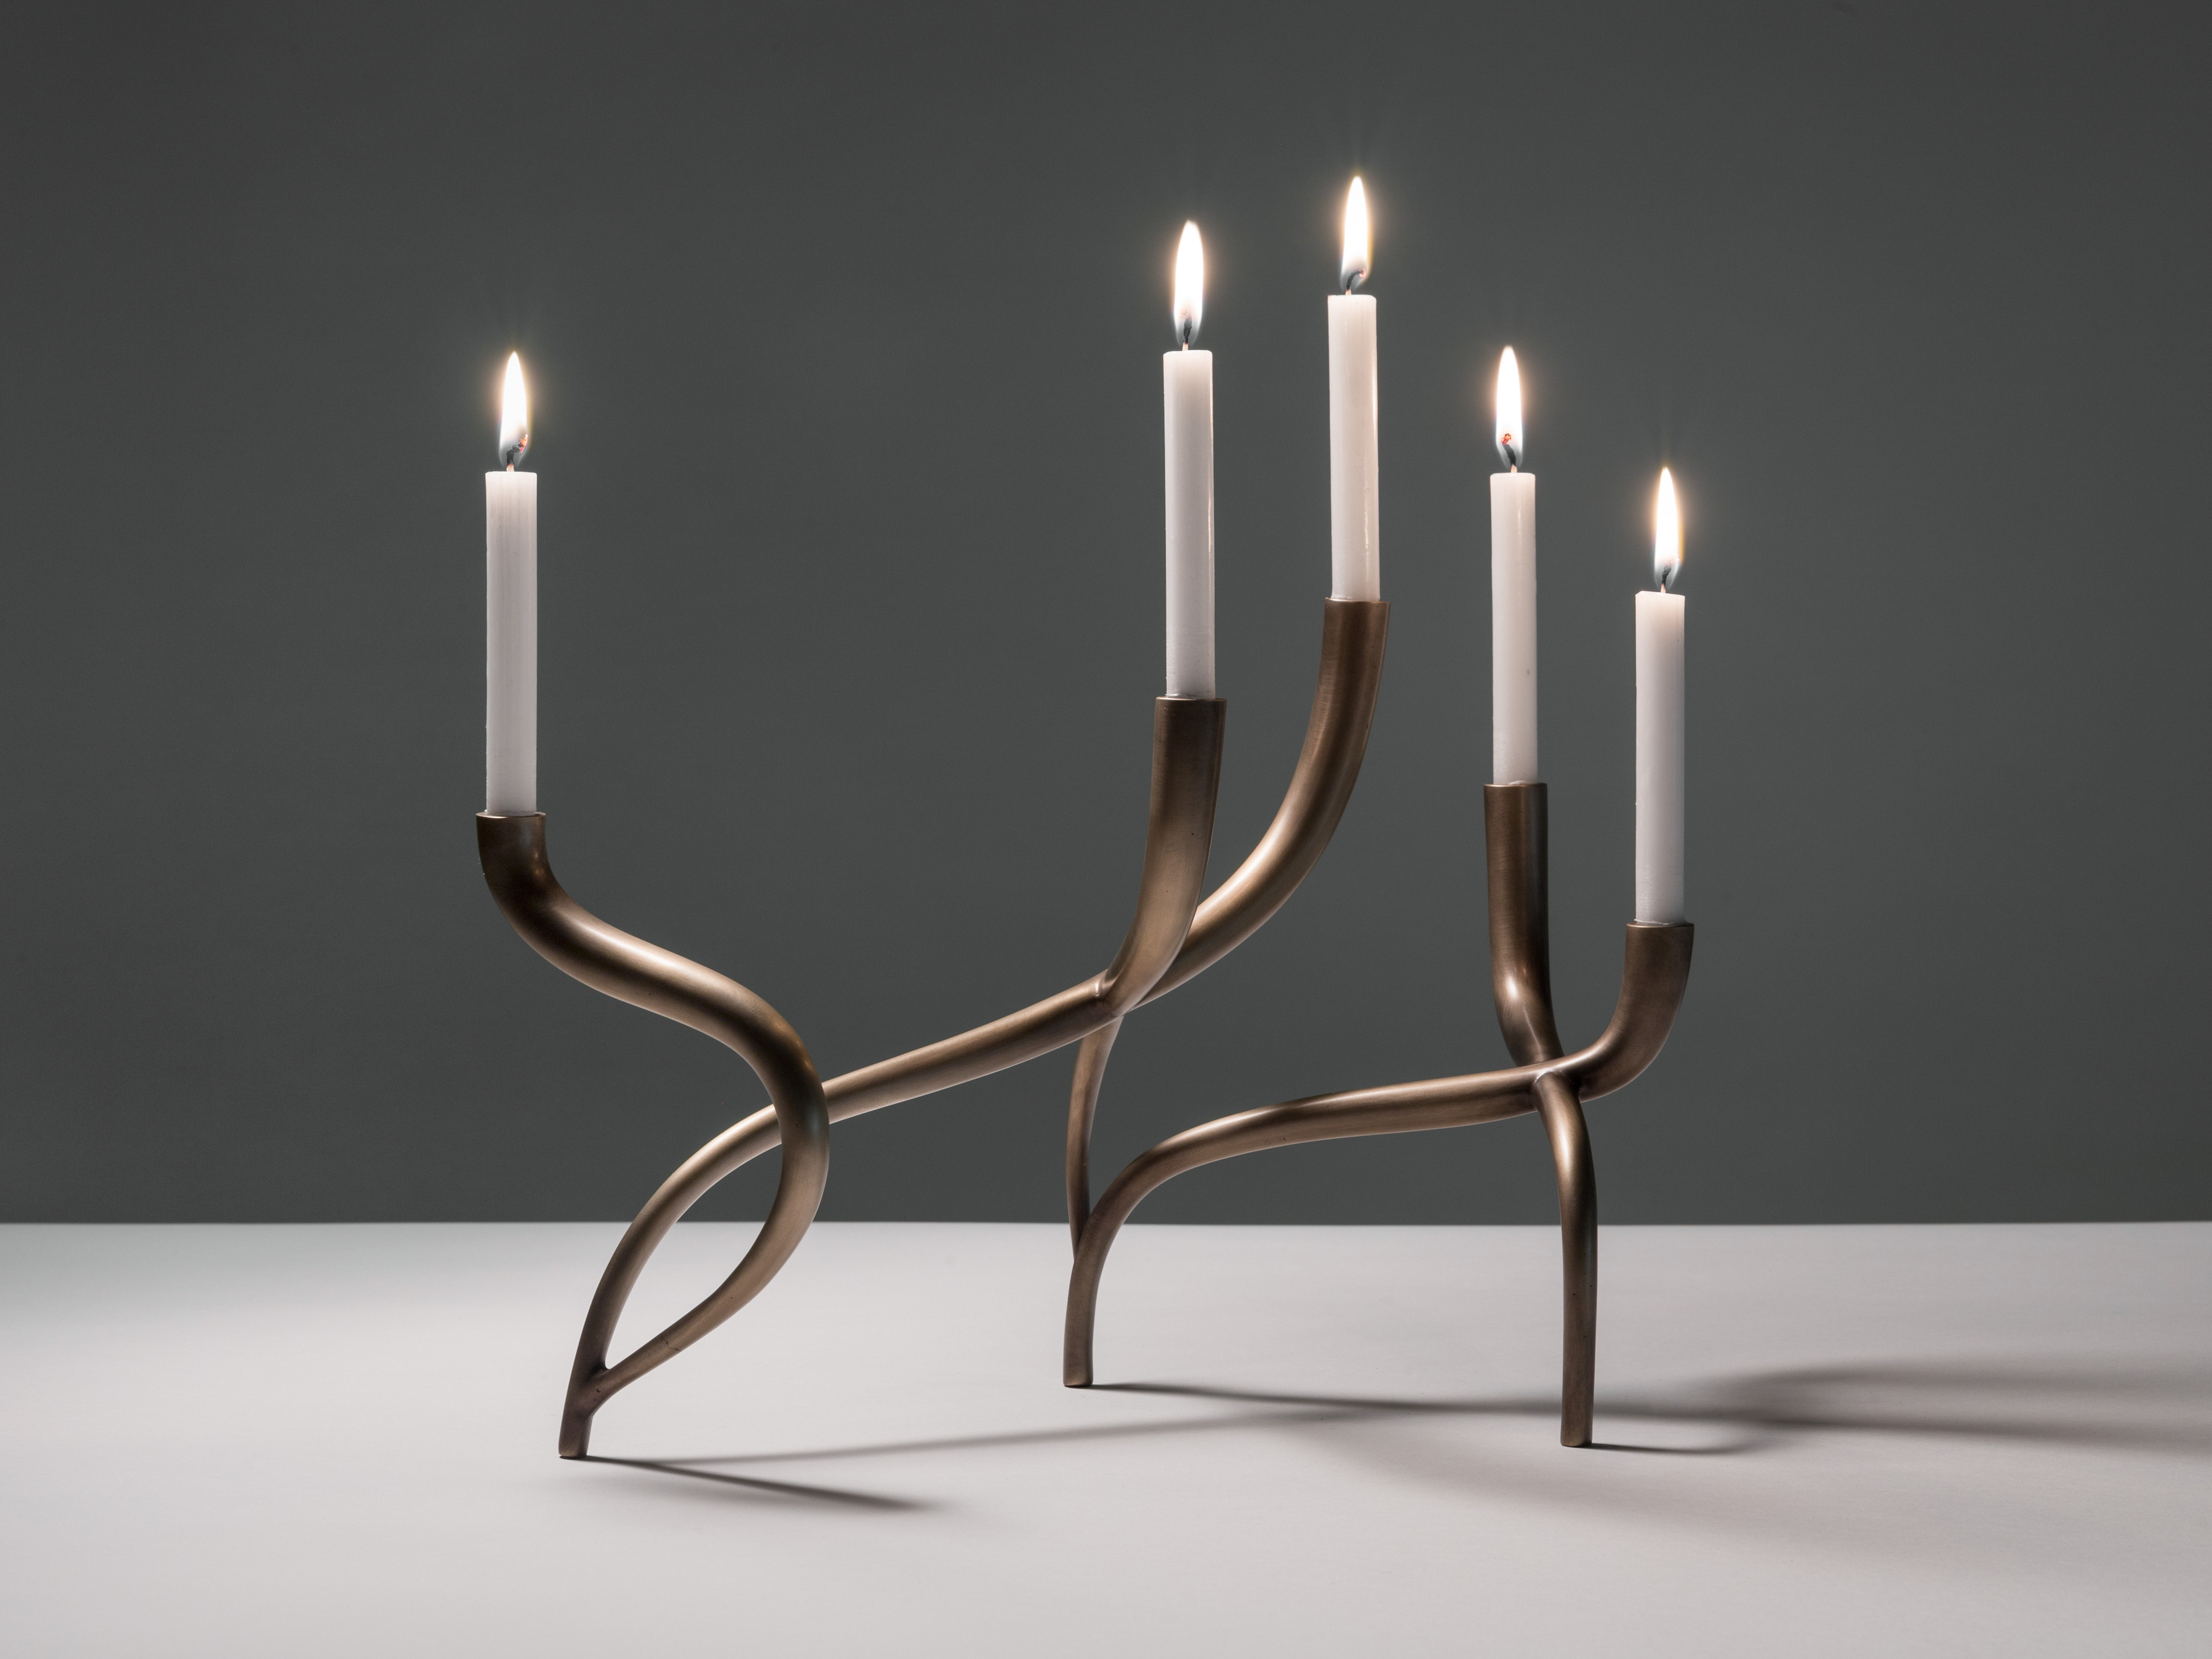 Rhizome candelabra by Angela Huang (BFA 2017), School of the Art Institute of Chicago (Photo: Business Wire)